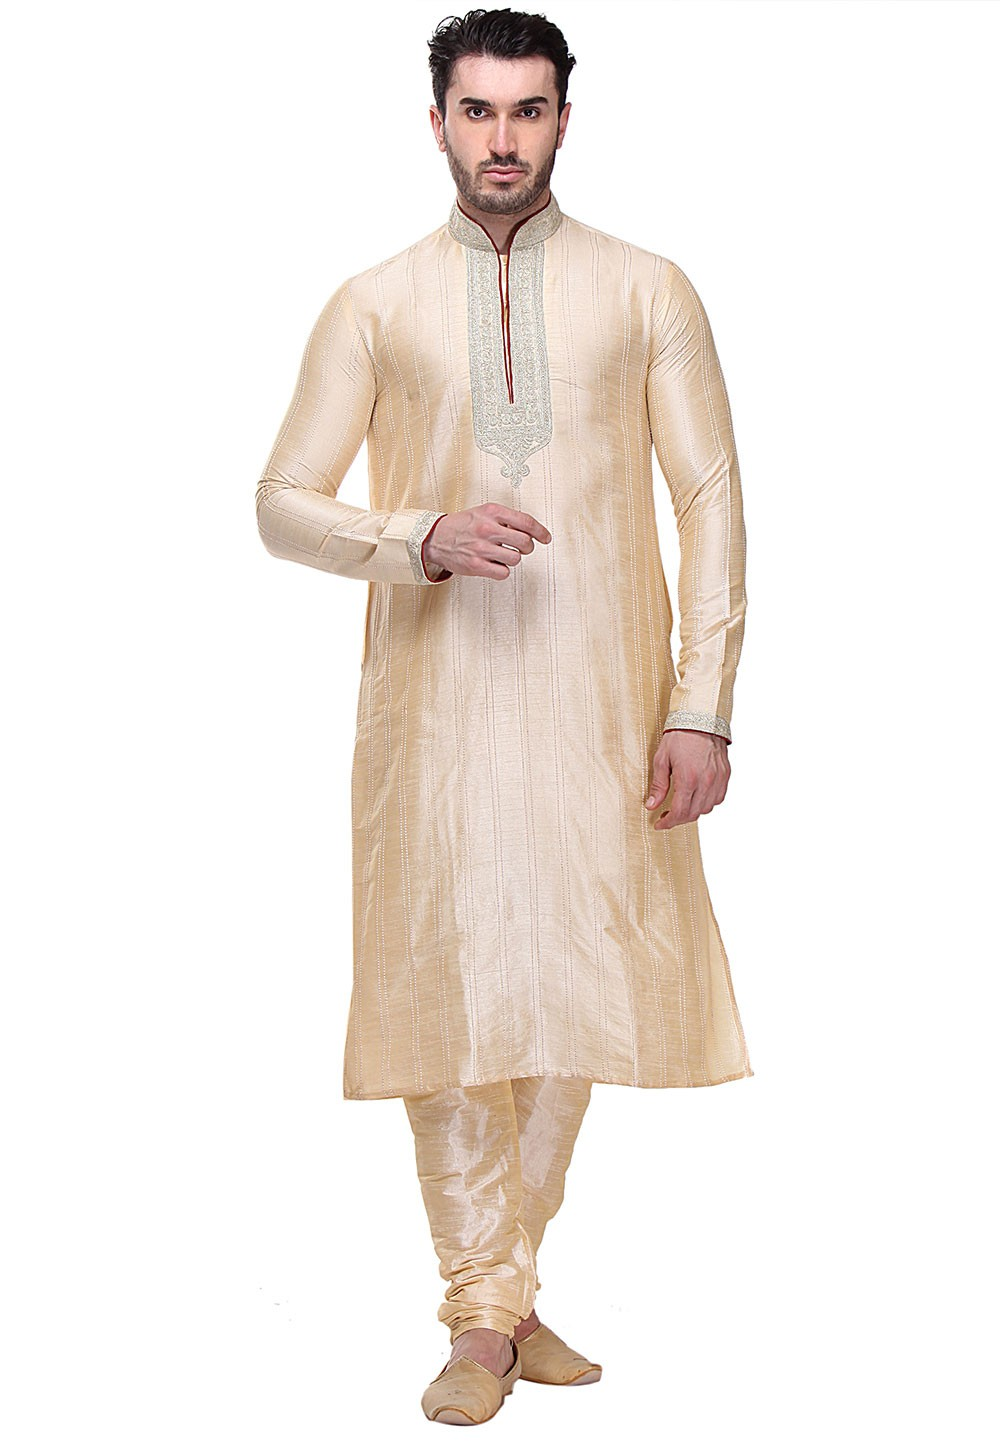 Golden Color Dupion Art Silk Readymade Kurta Pajama.